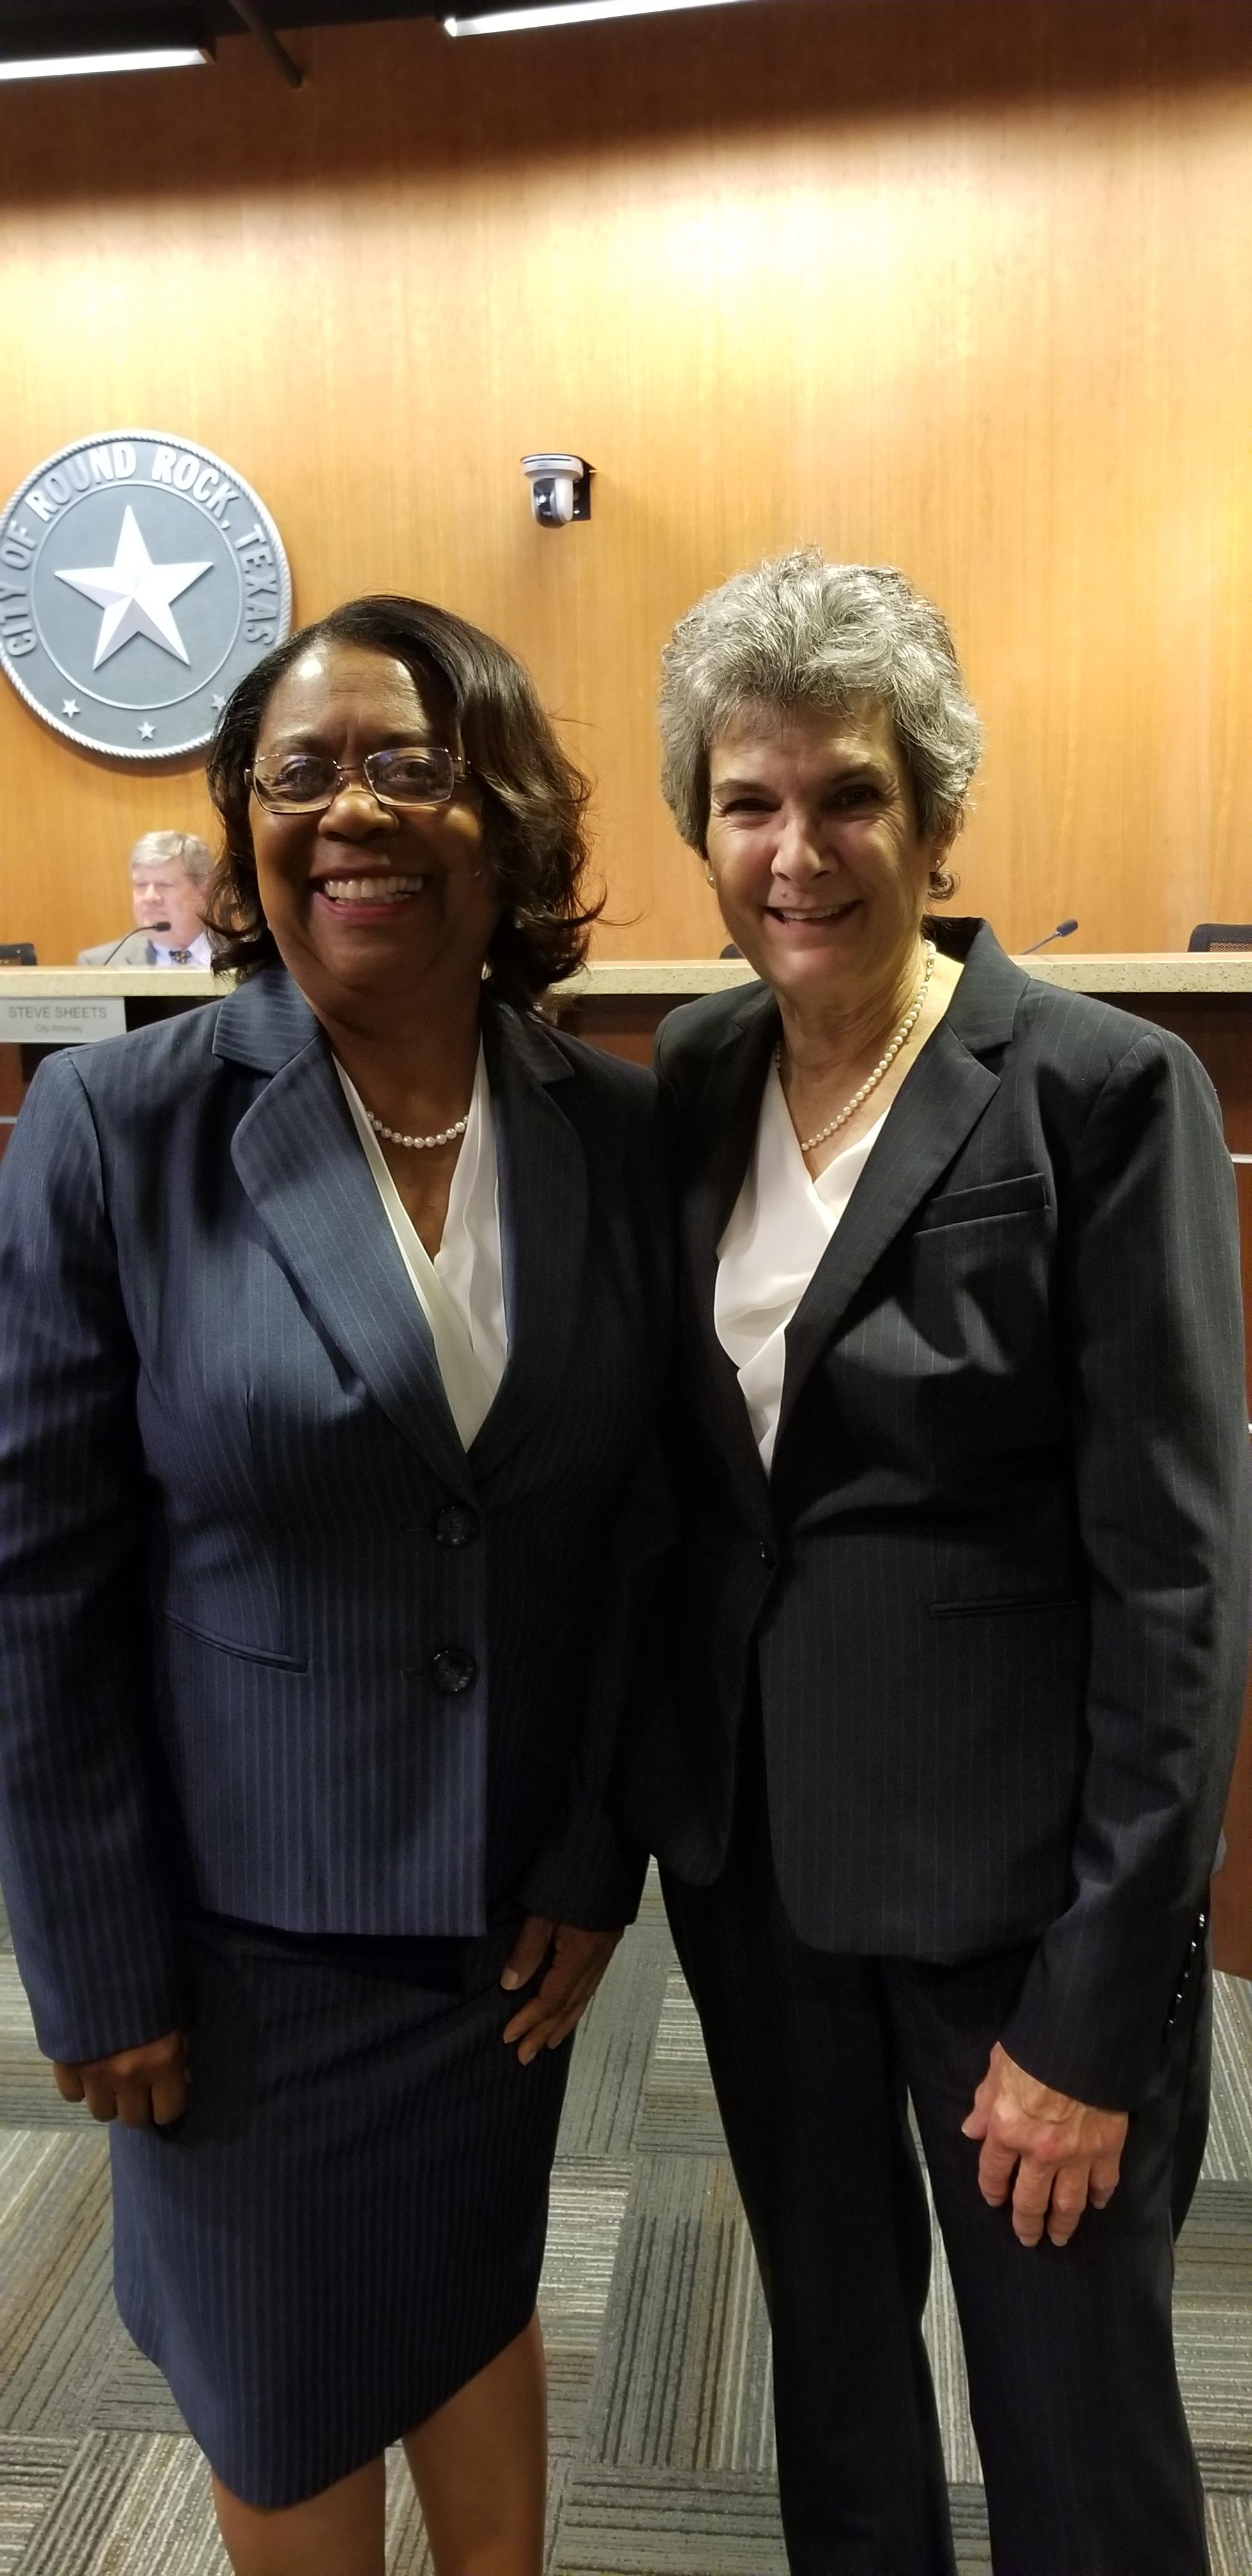 Commissioner Cook stands with Council Member Hilda Montgomery after she swore in the Council Member for her second term on the Round Rock City Council.